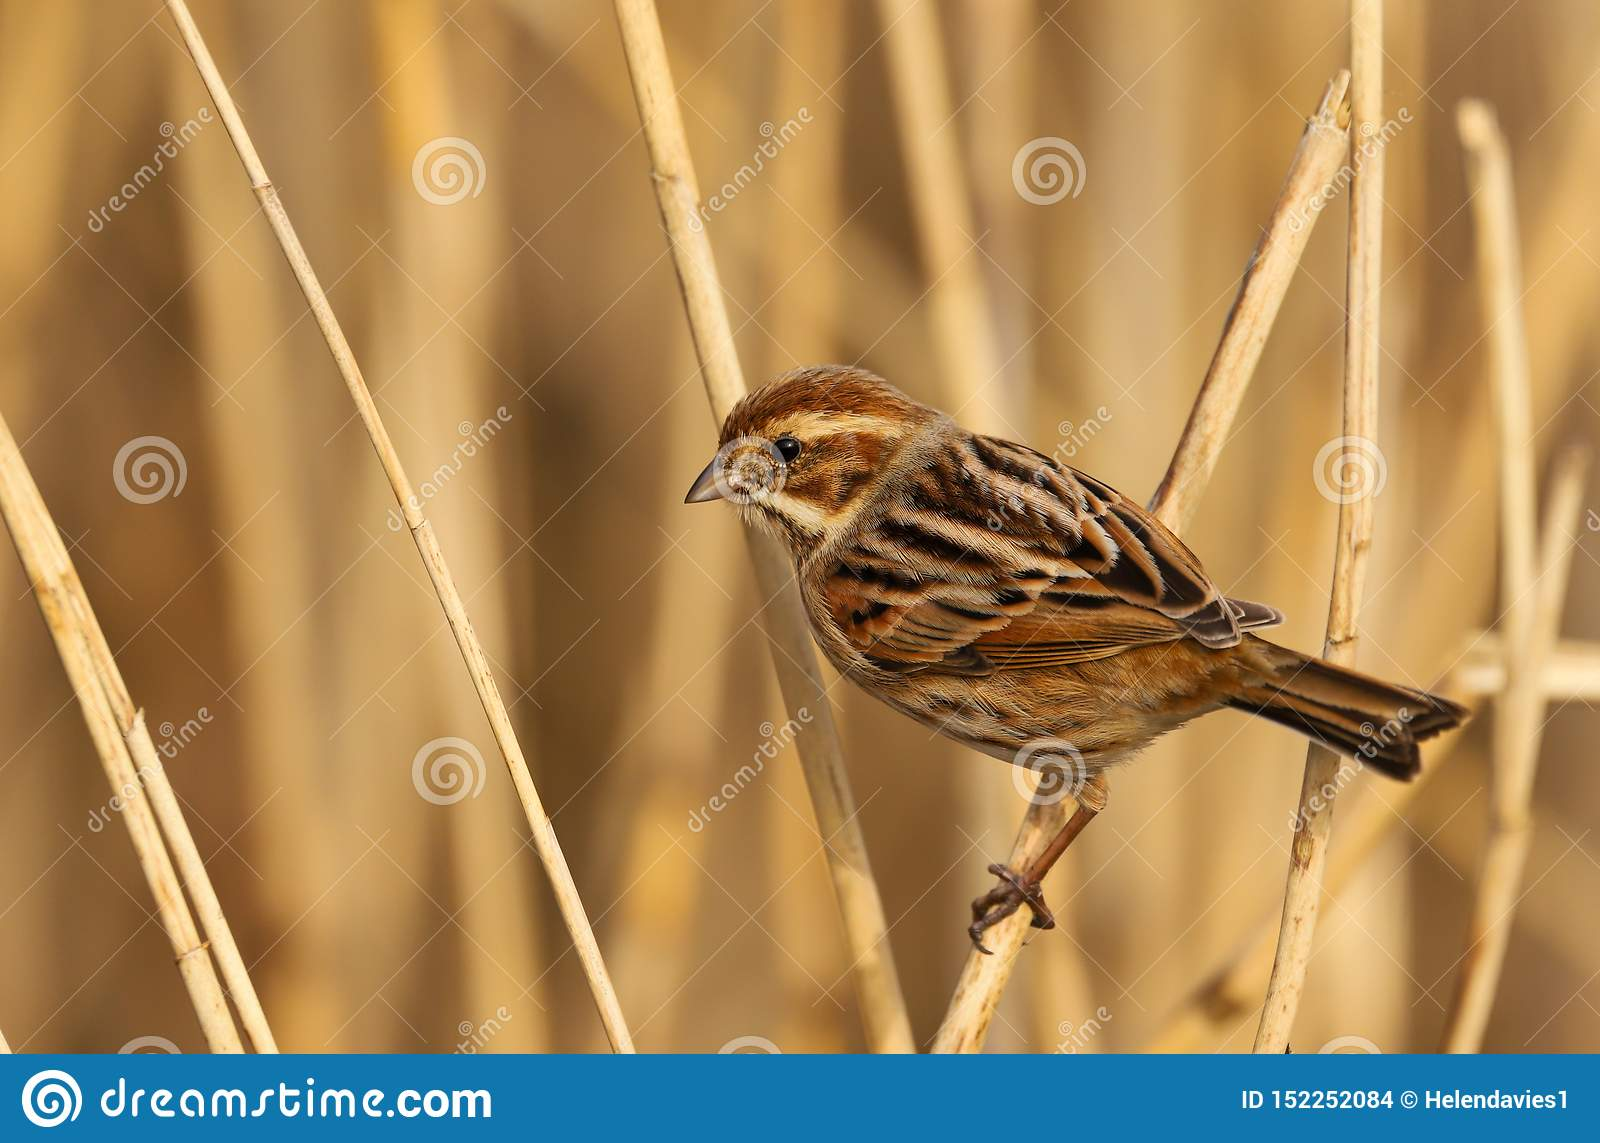 Female Reed Bunting Emberiza Schoeniclus Bird In The Spring Sunshine Stock Photo Image Of Early Copy 152252084